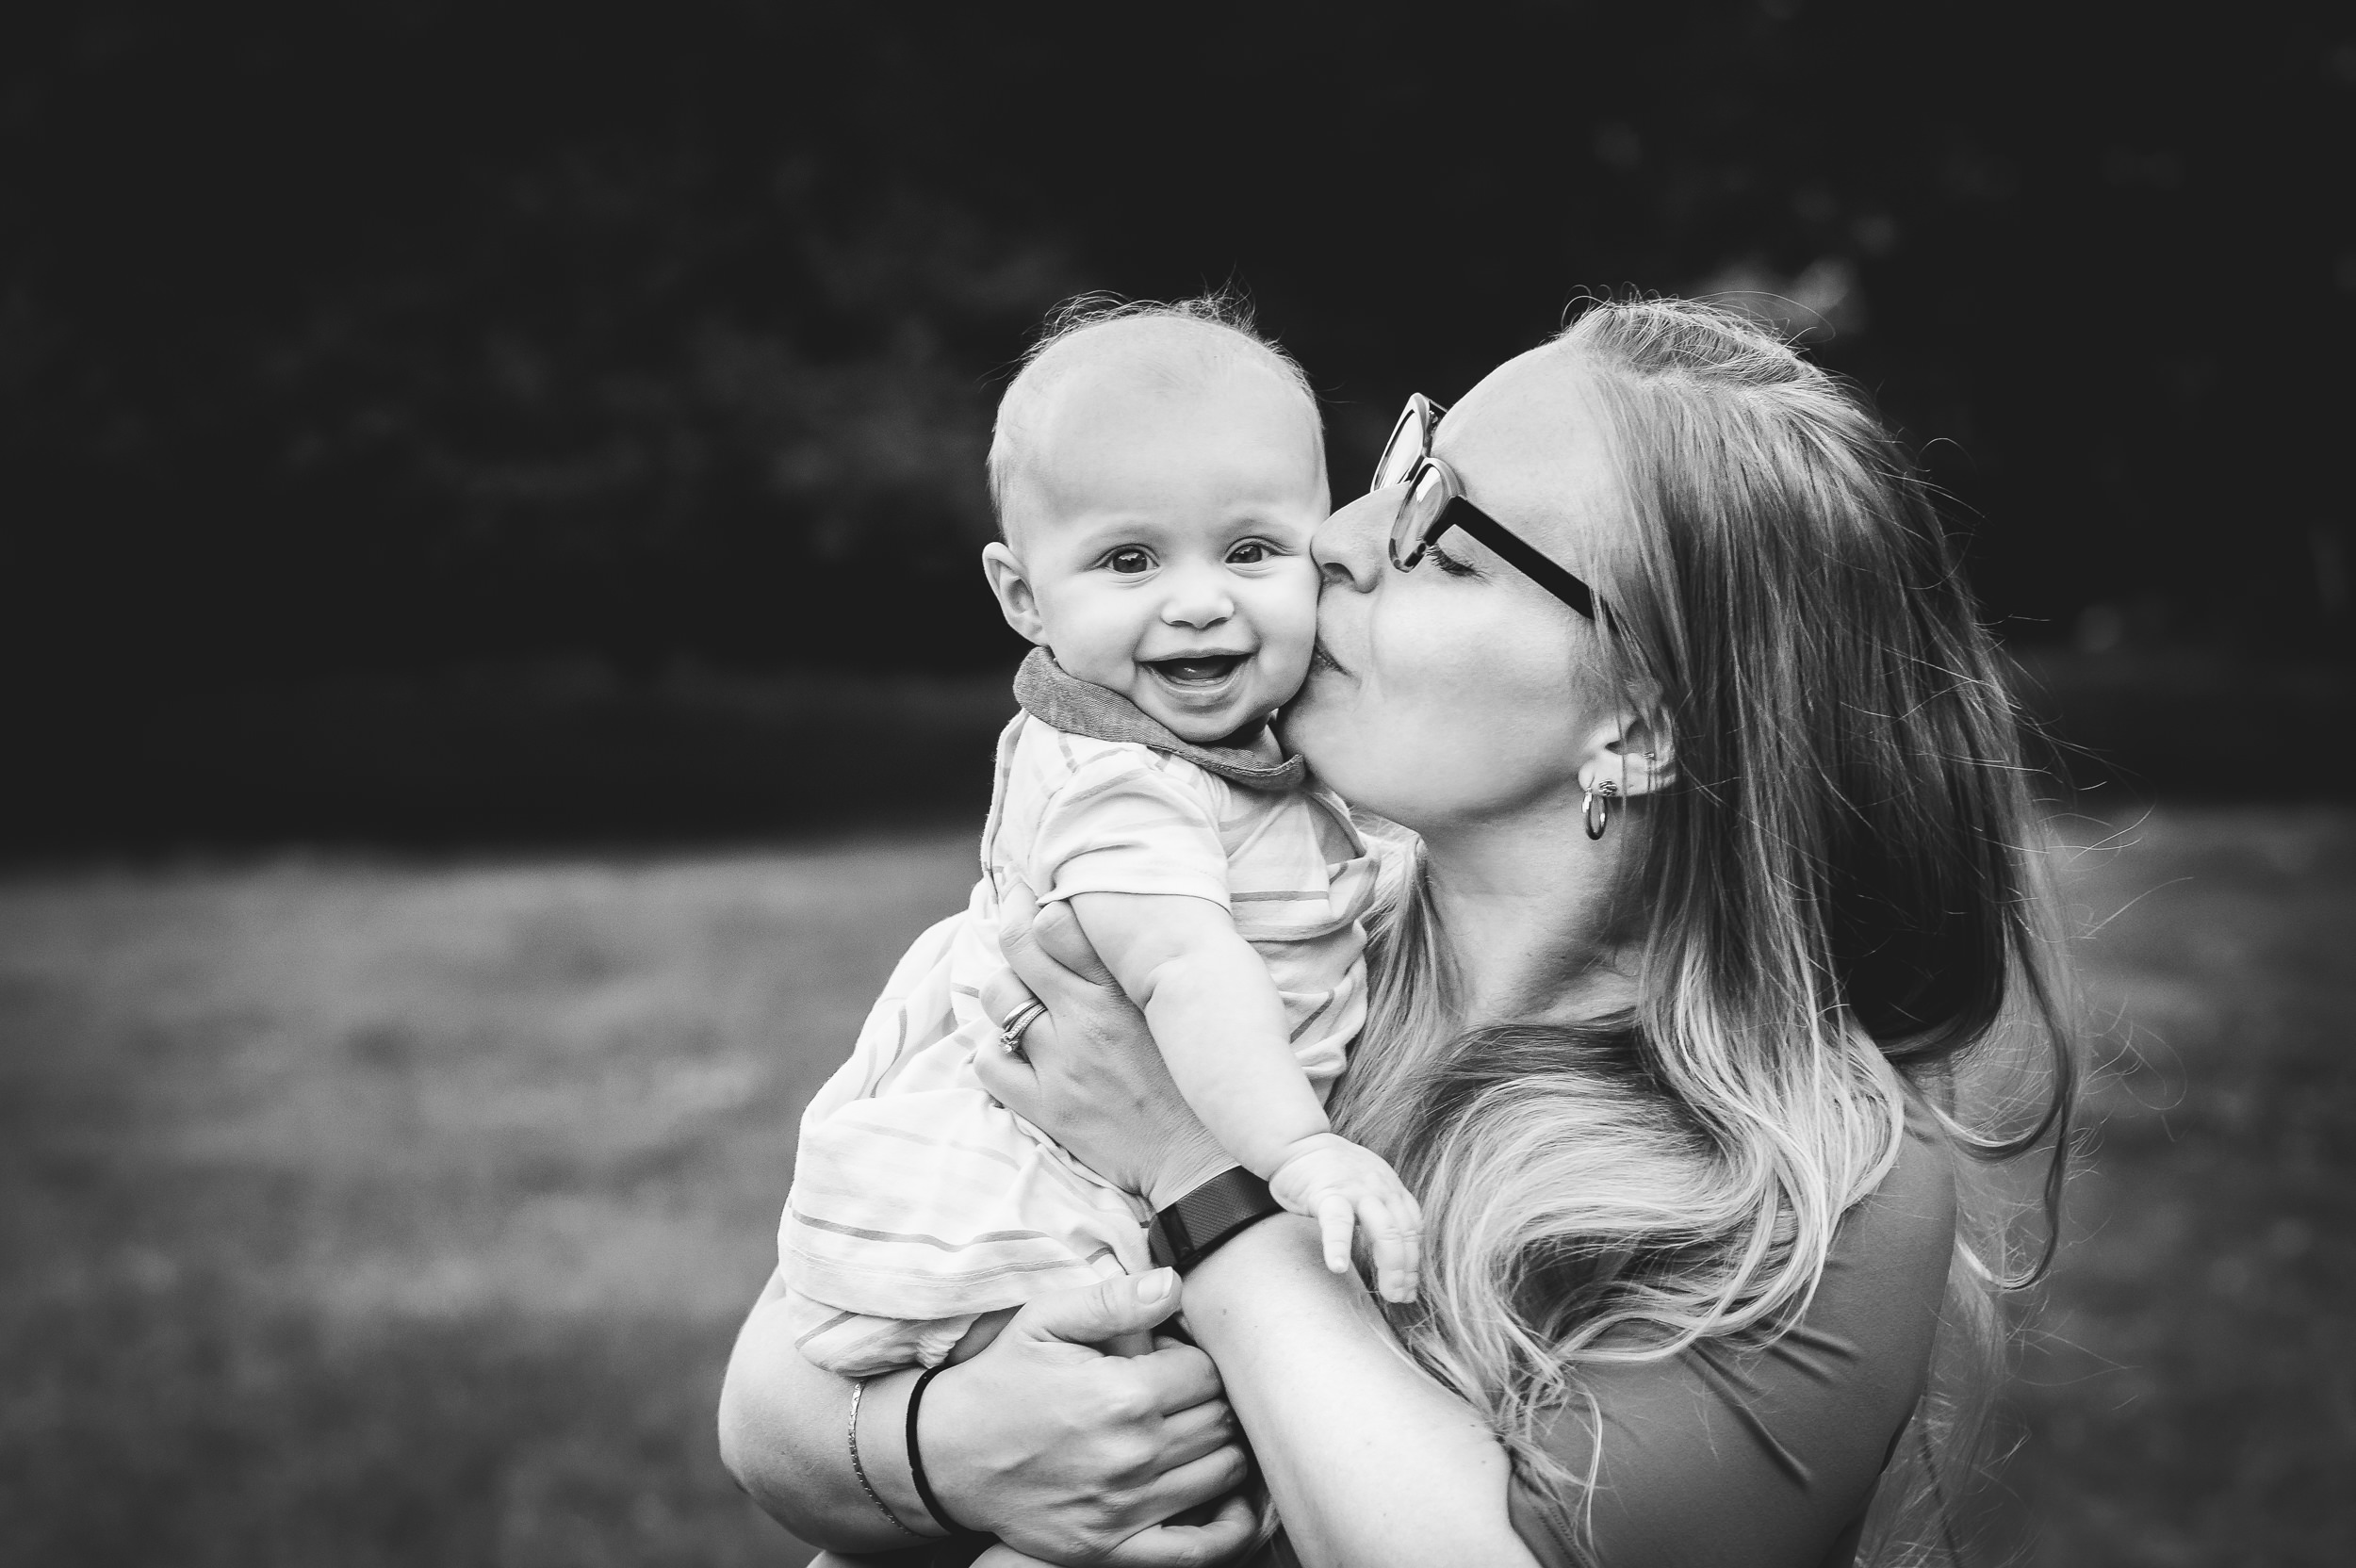 Hi! - I'm Kristen, a newborn, baby, and family photographer located on the Shoreline of CT - a recent transplant from Boston. For more about me, head on over here.